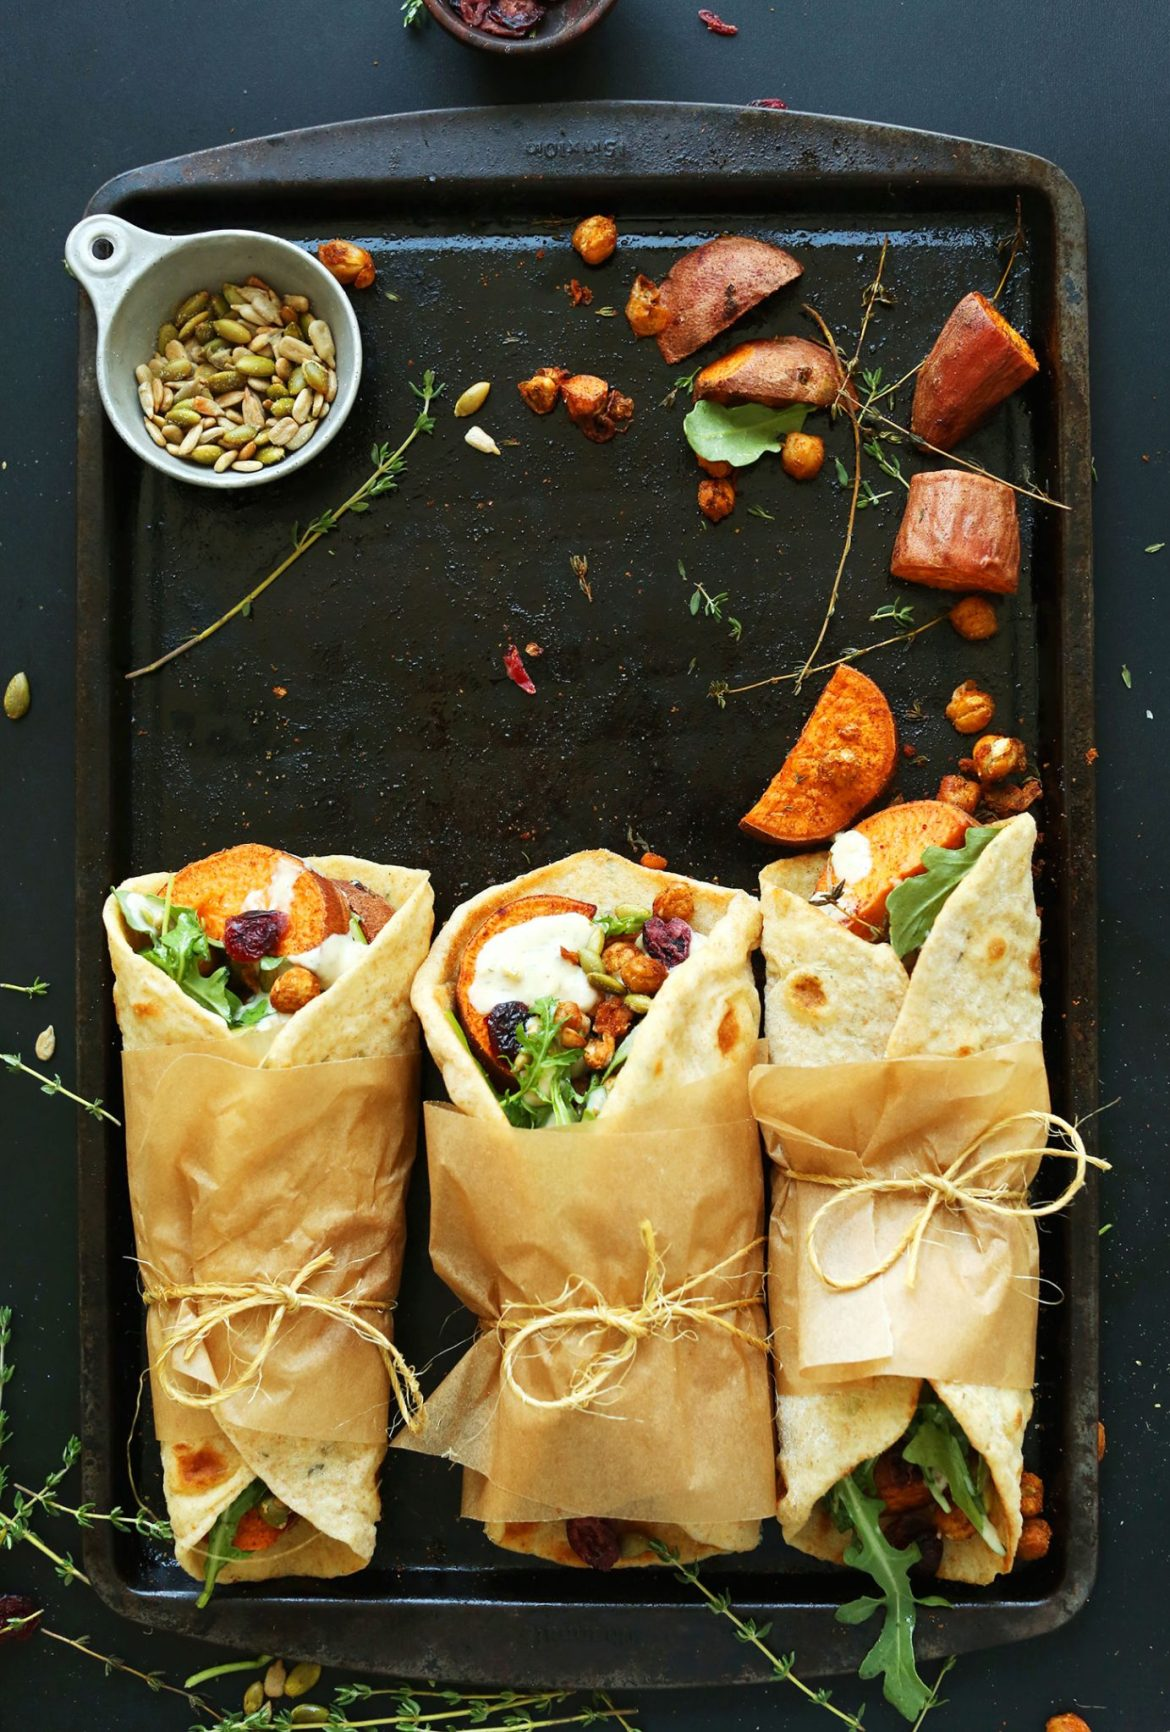 22 Delicious Vegan Festive Holiday Side & Main Dishes